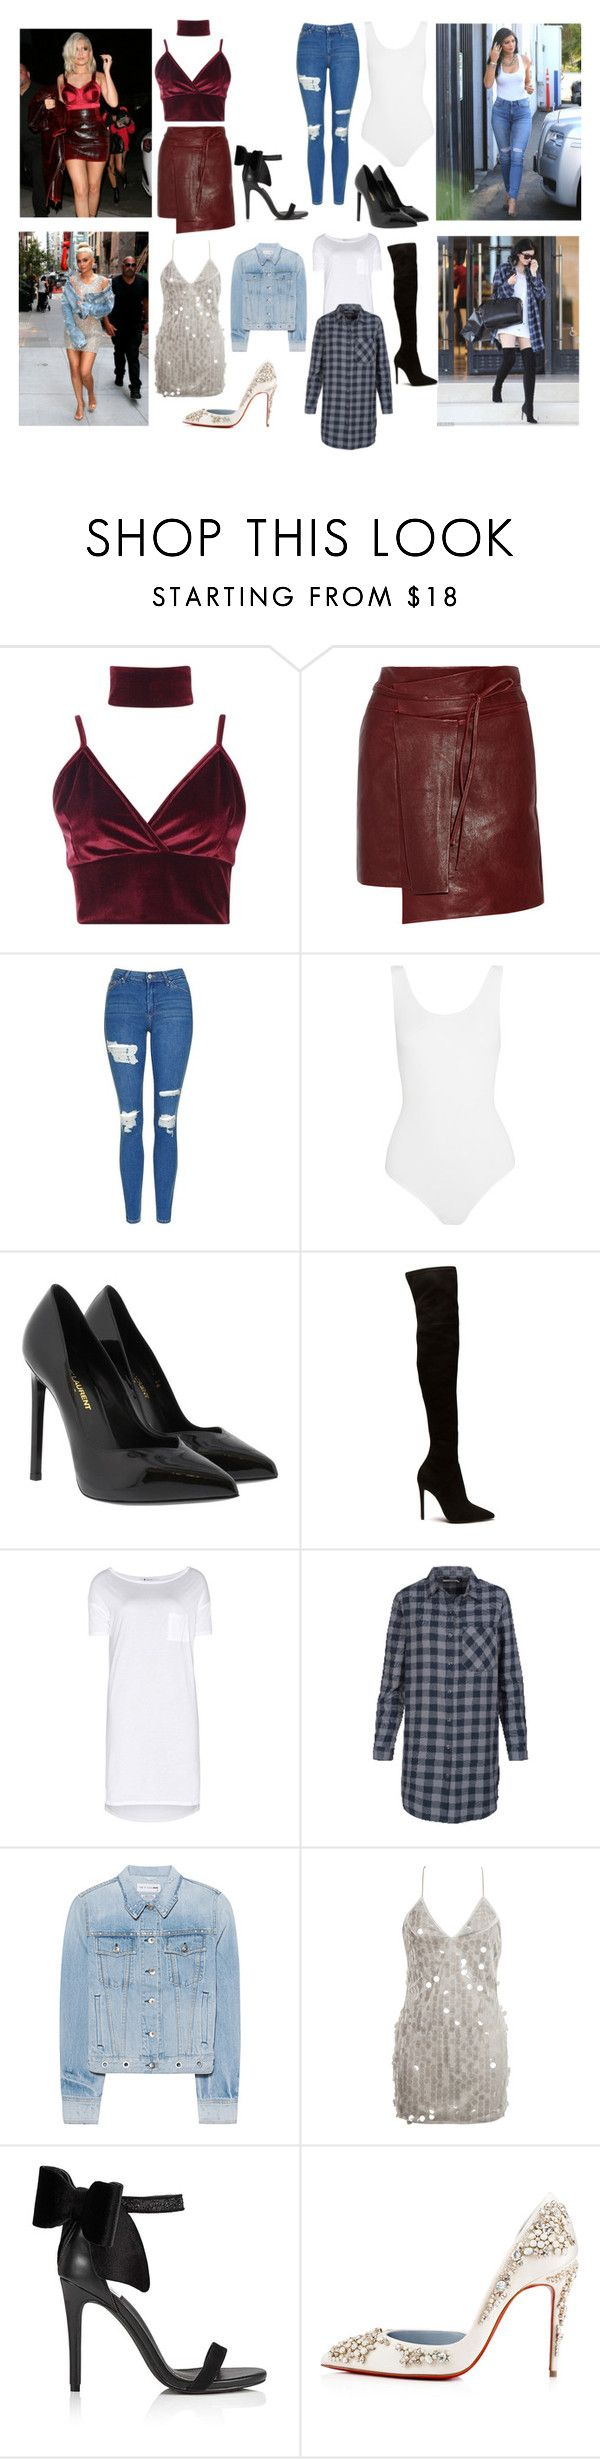 """4 Kylie Jnner Inspred outfits for every type of style"" by caroline-corradine on Polyvore featuring Kendall + Kylie, 7 For All Mankind, Boohoo, Isabel Marant, Topshop, Yummie by Heather Thomson, Yves Saint Laurent, T By Alexander Wang, rag & bone y WithChic"